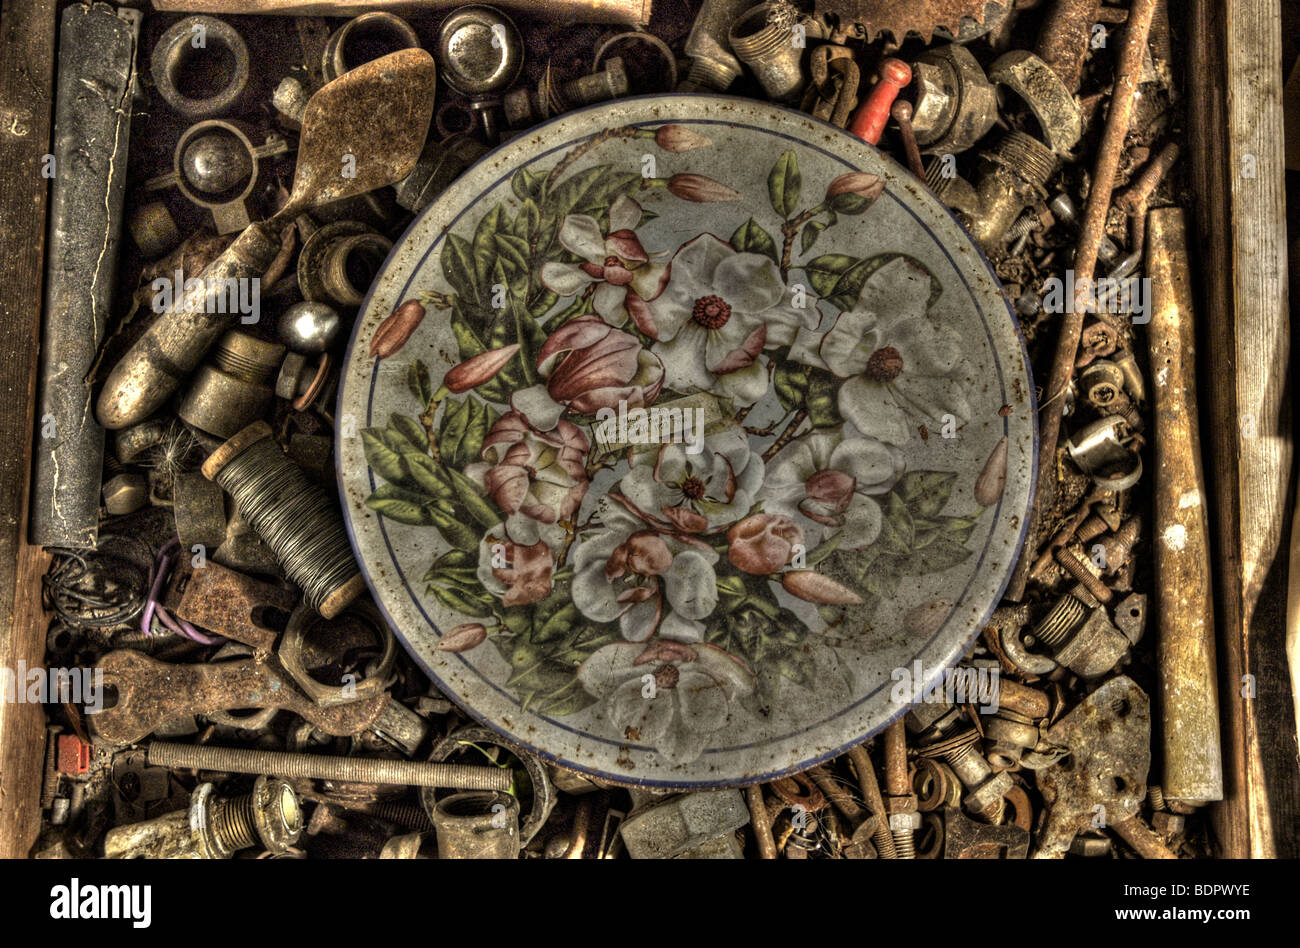 An old tin with a decorative floral design in a box of old nuts and bolts Stock Photo